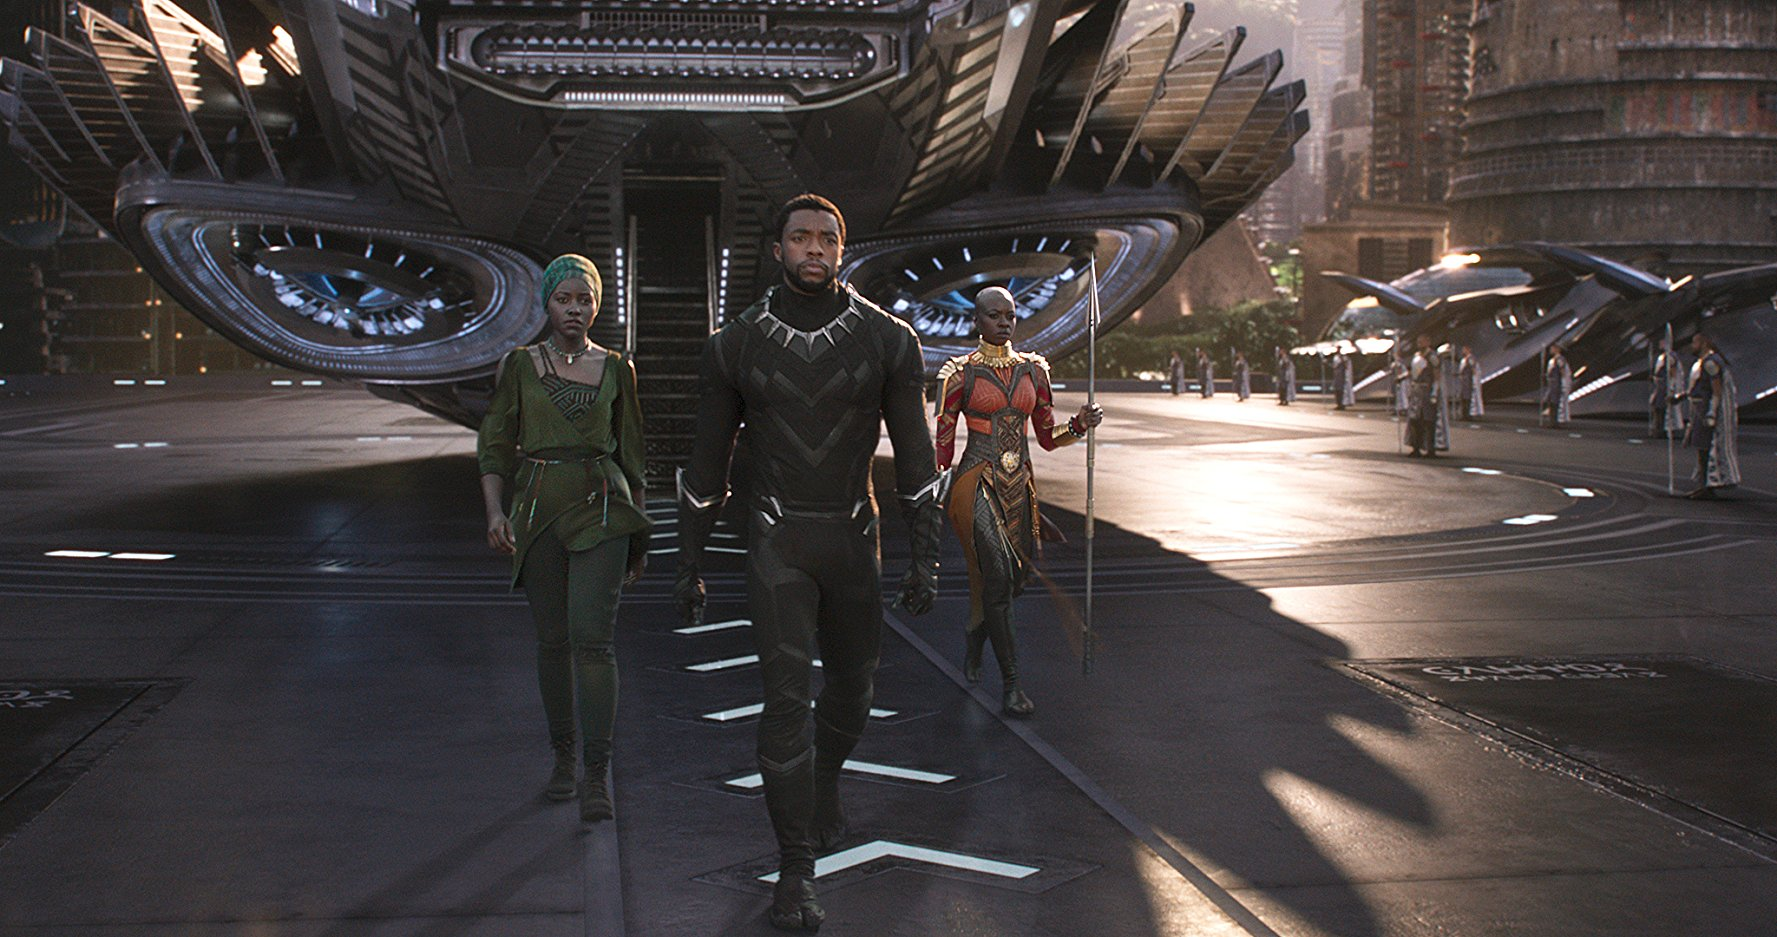 'Black Panther' lives up to the hype in an exhilarating and thoughtful debut